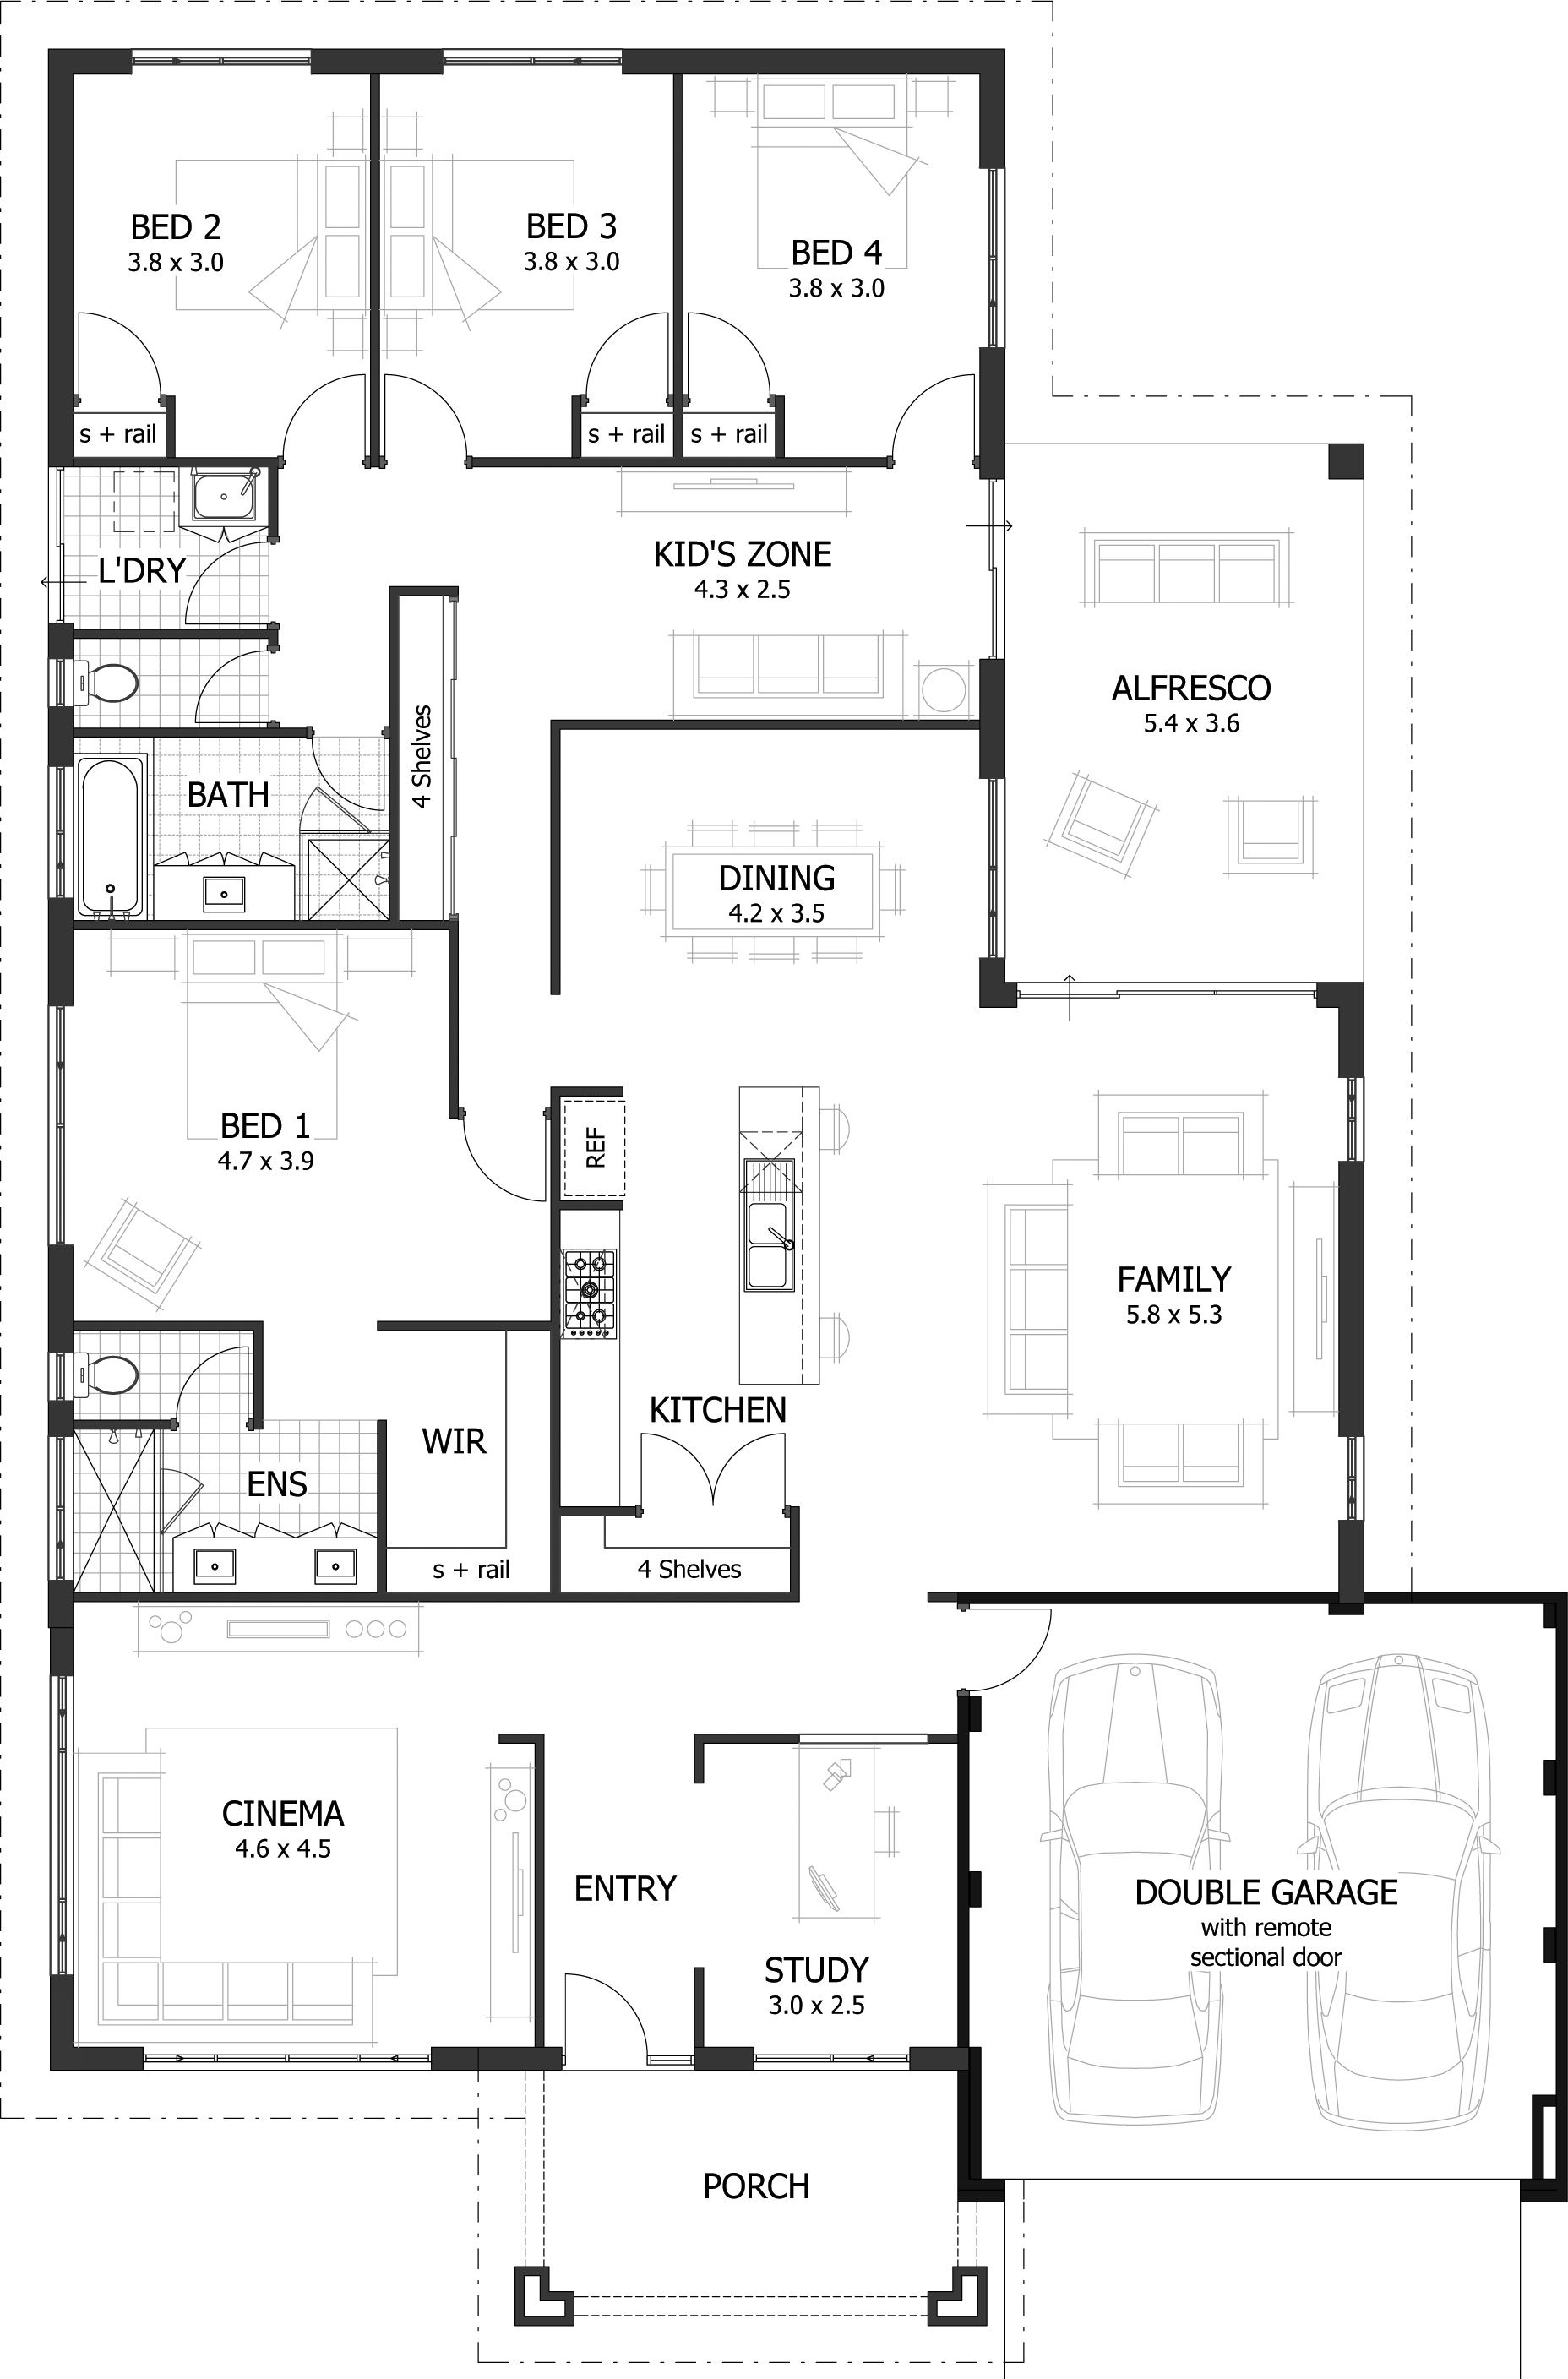 Superior 4 Bedroom House Plans U0026 Home Designs | Celebration Homes